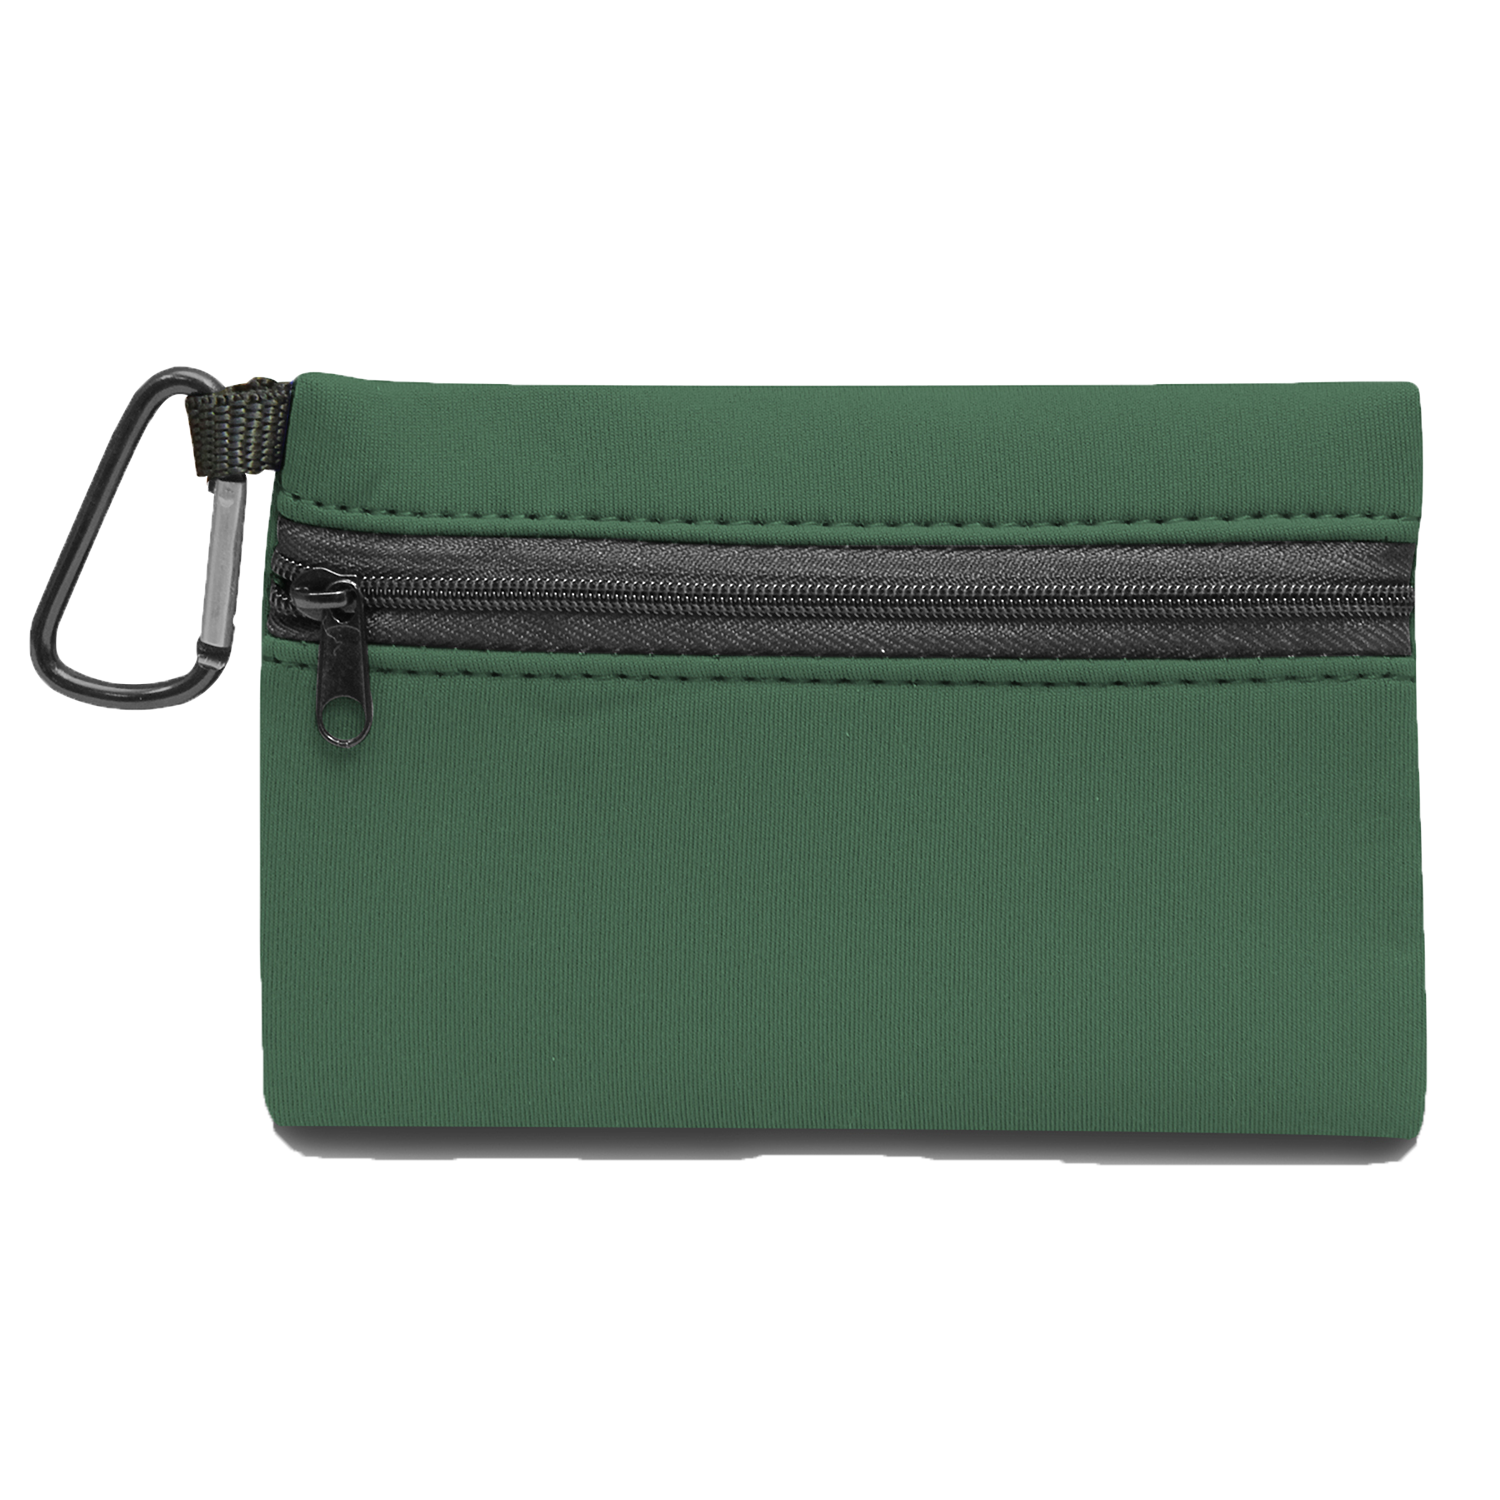 River's End 2887 Neoprene Zipper Wallet